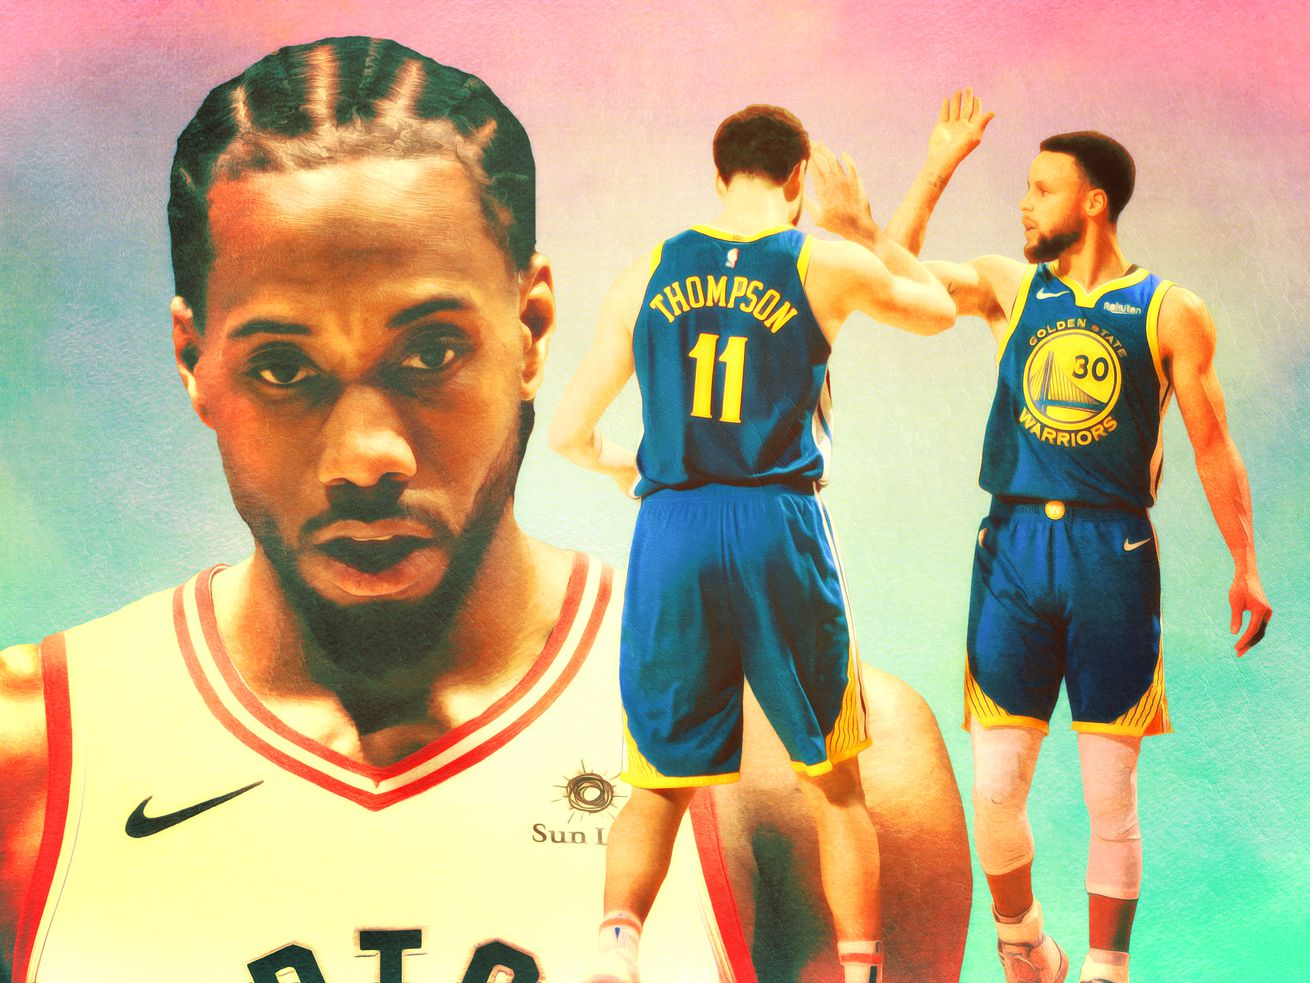 a8034236cdd The Golden State star left Game 5 in a walking boot with plenty of  questions trailing after him. Plus: Kawhi Leonard goes full Jordan in a  losing effort, ...